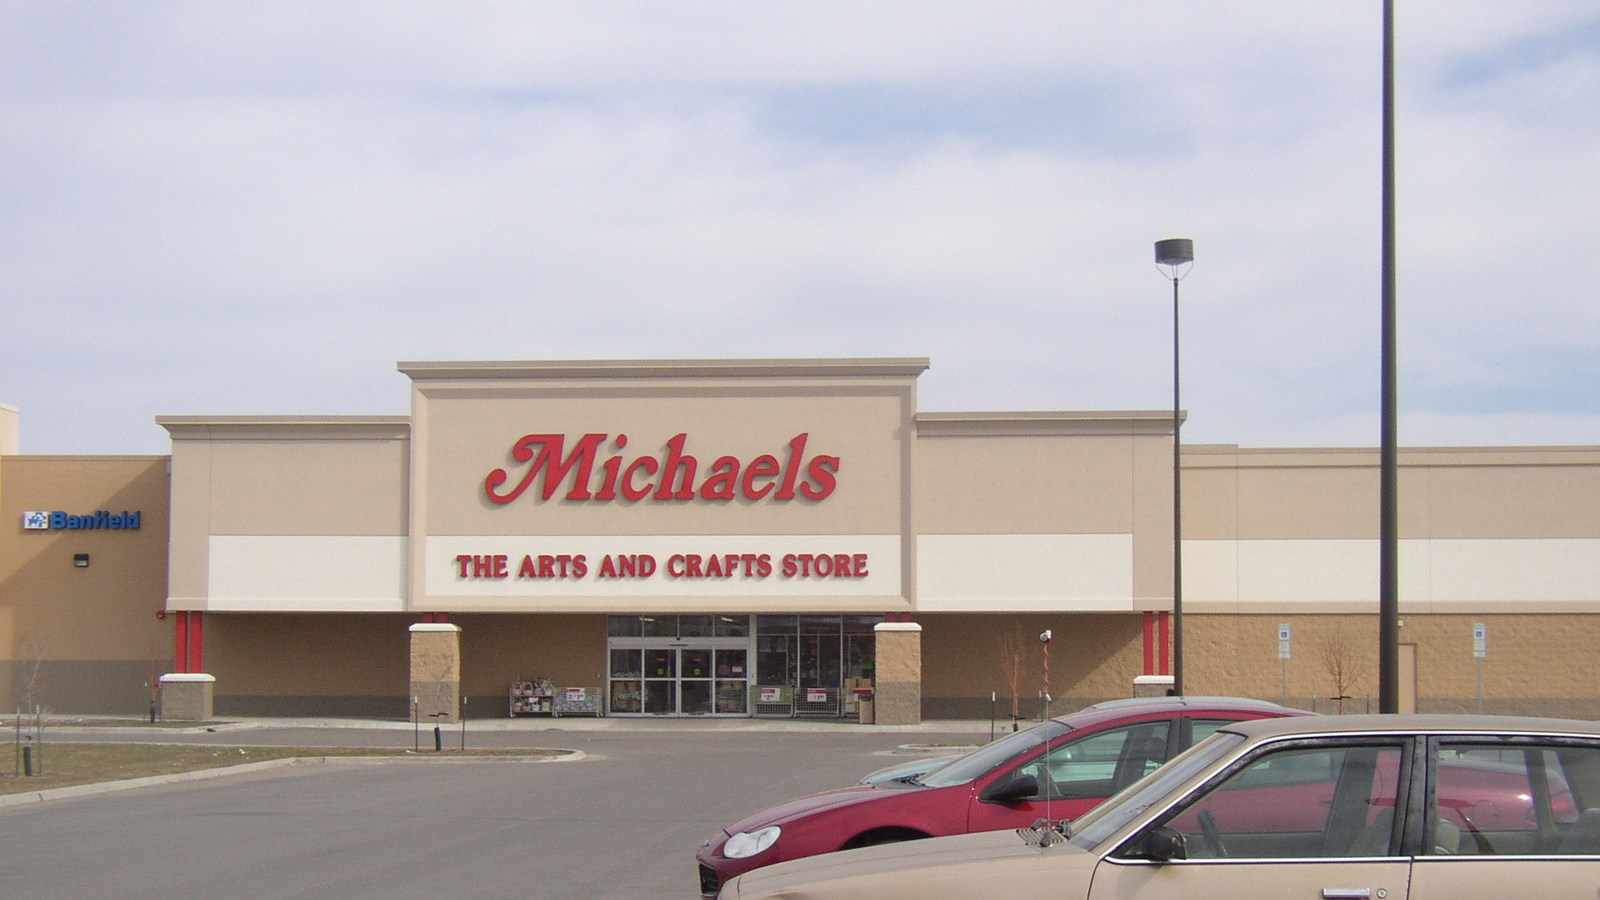 Michaels West Fargo Nd Oppidan